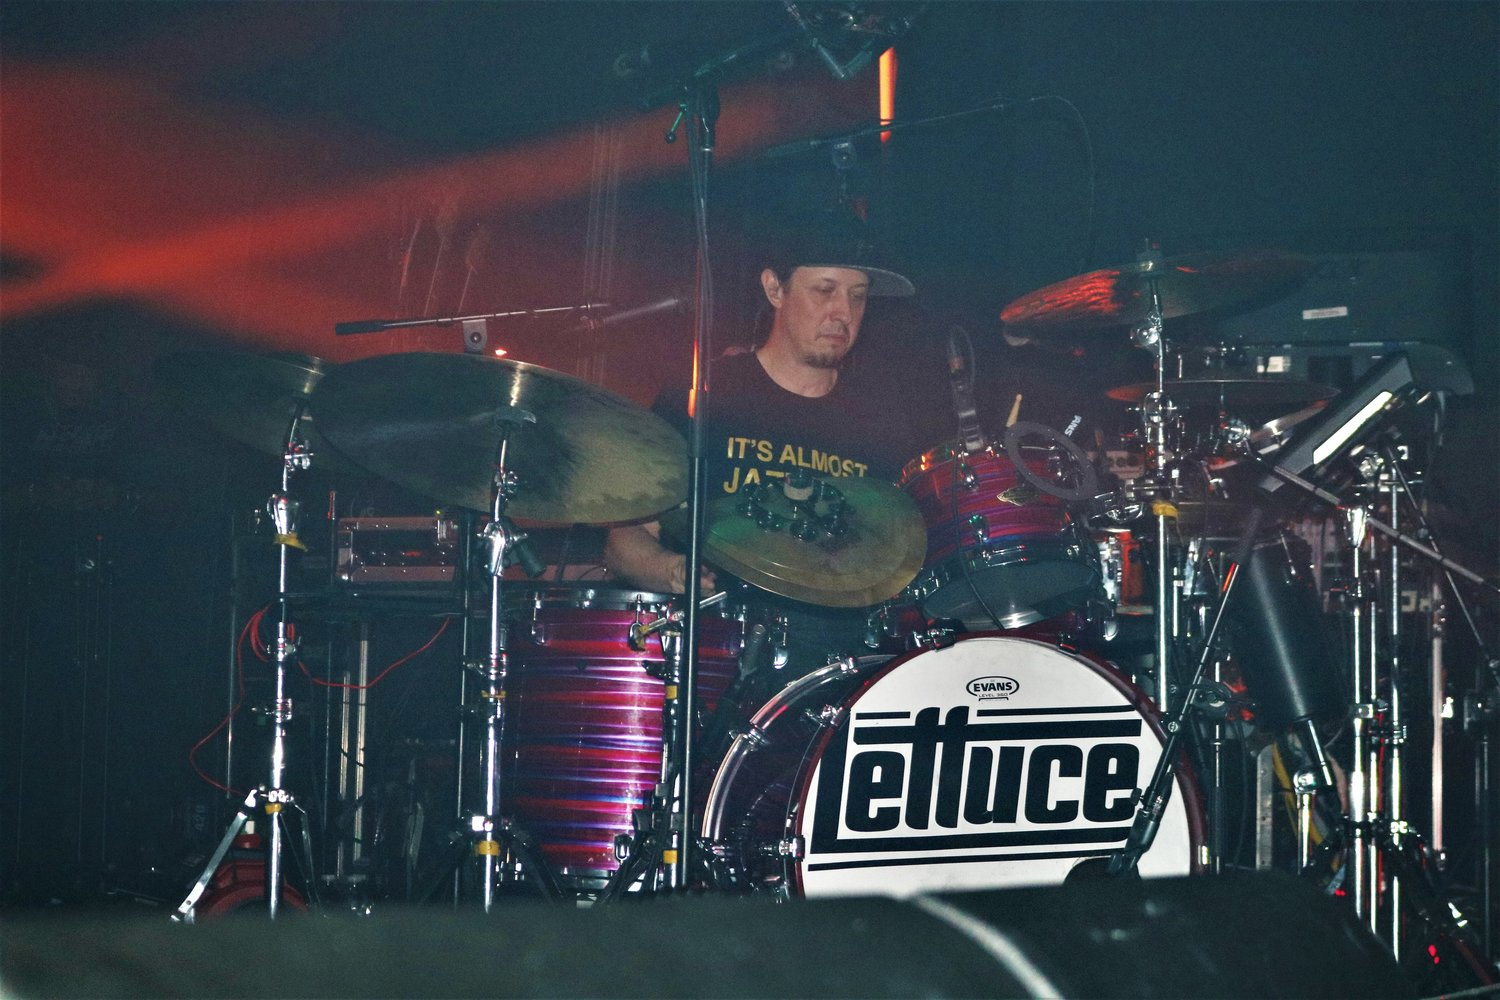 LETTUCE drummer, Adam Deitch, performs an elaborate drum solo during the set.